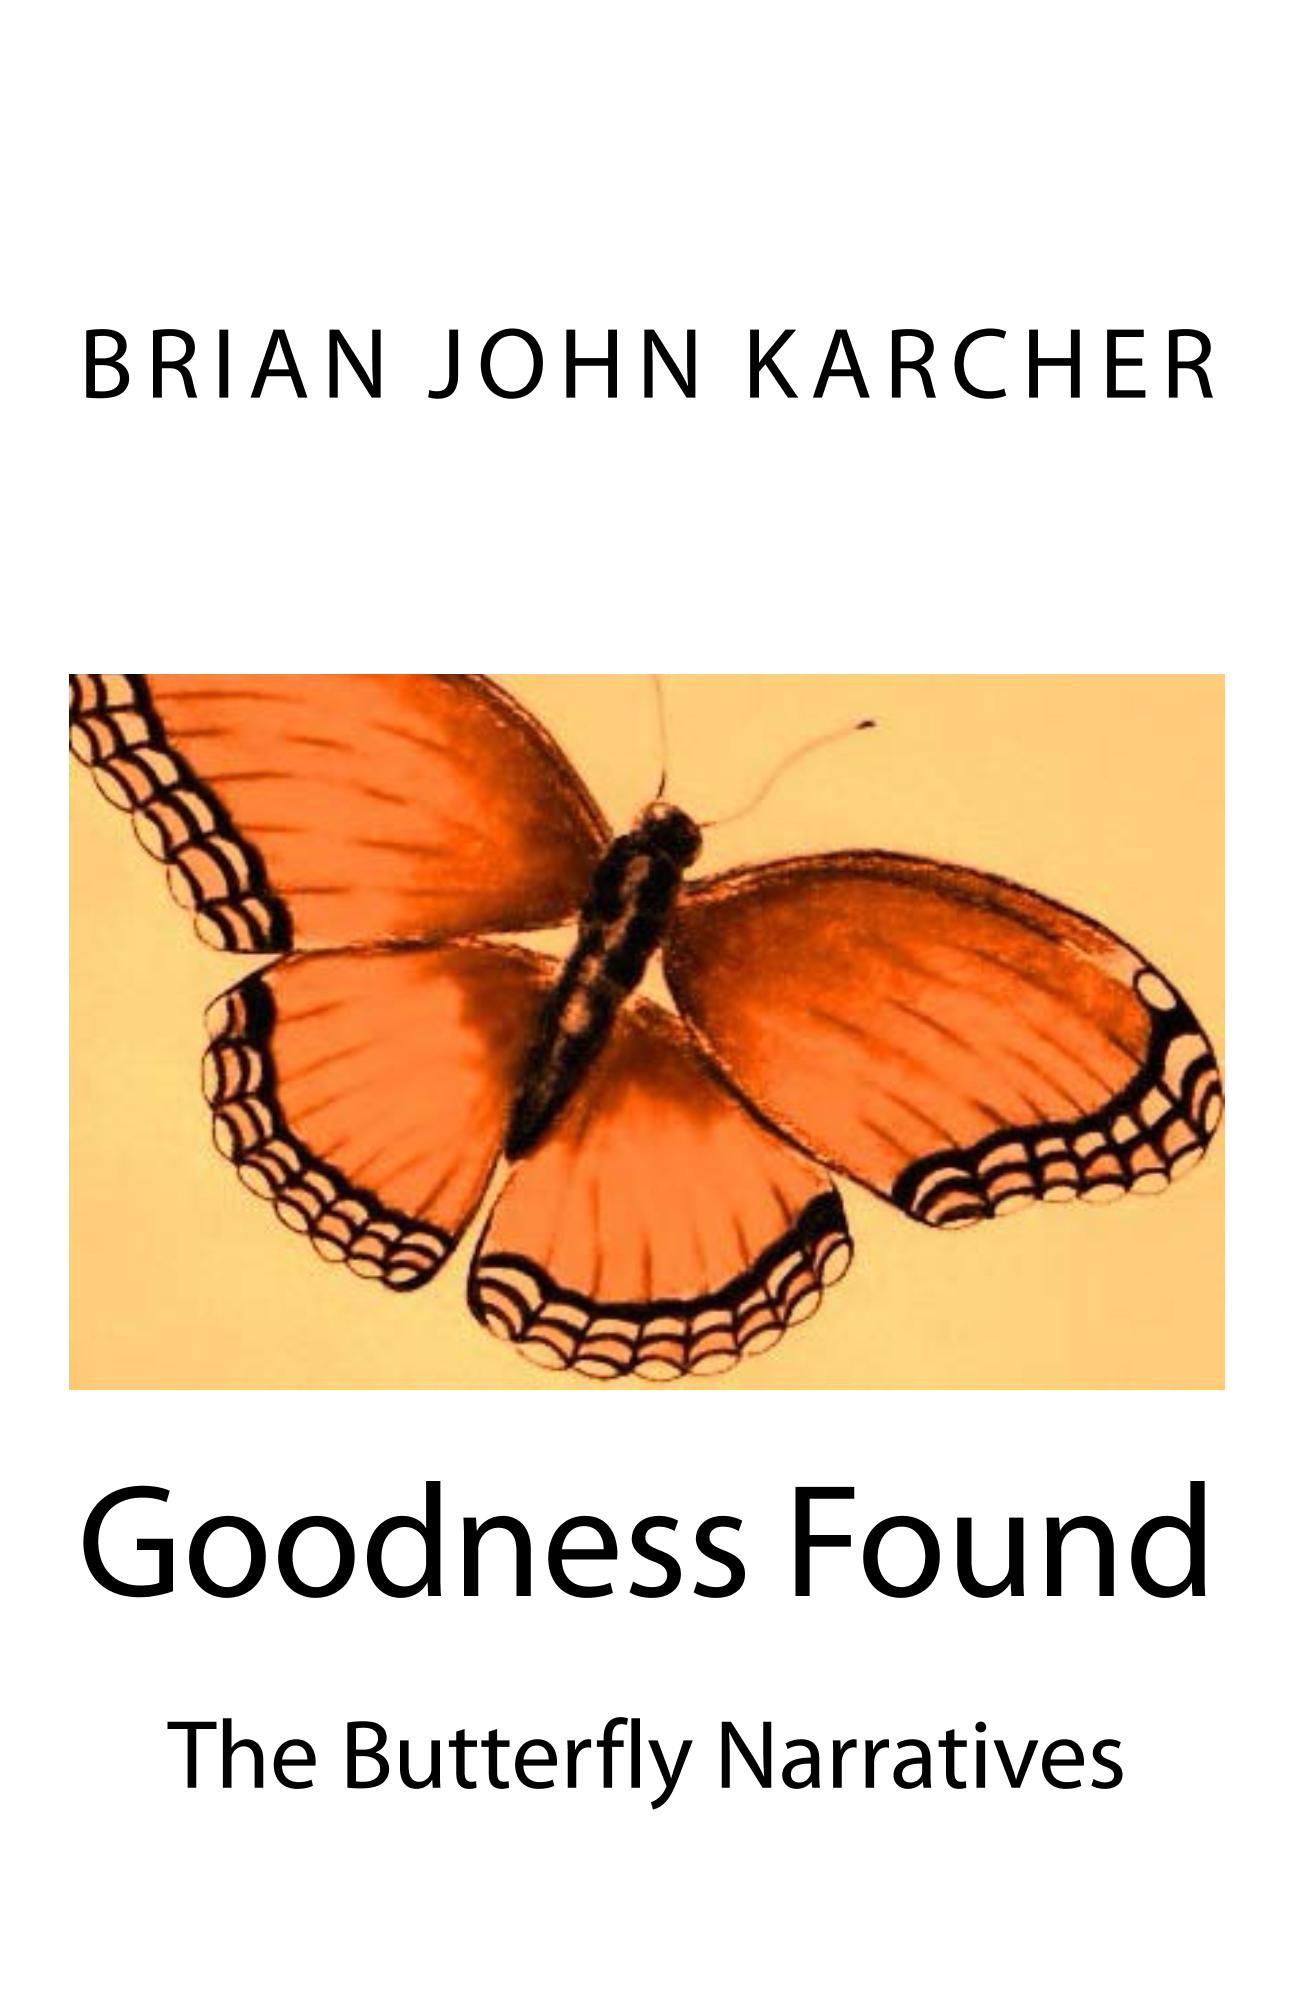 Goodness Found: The Butterfly Narratives